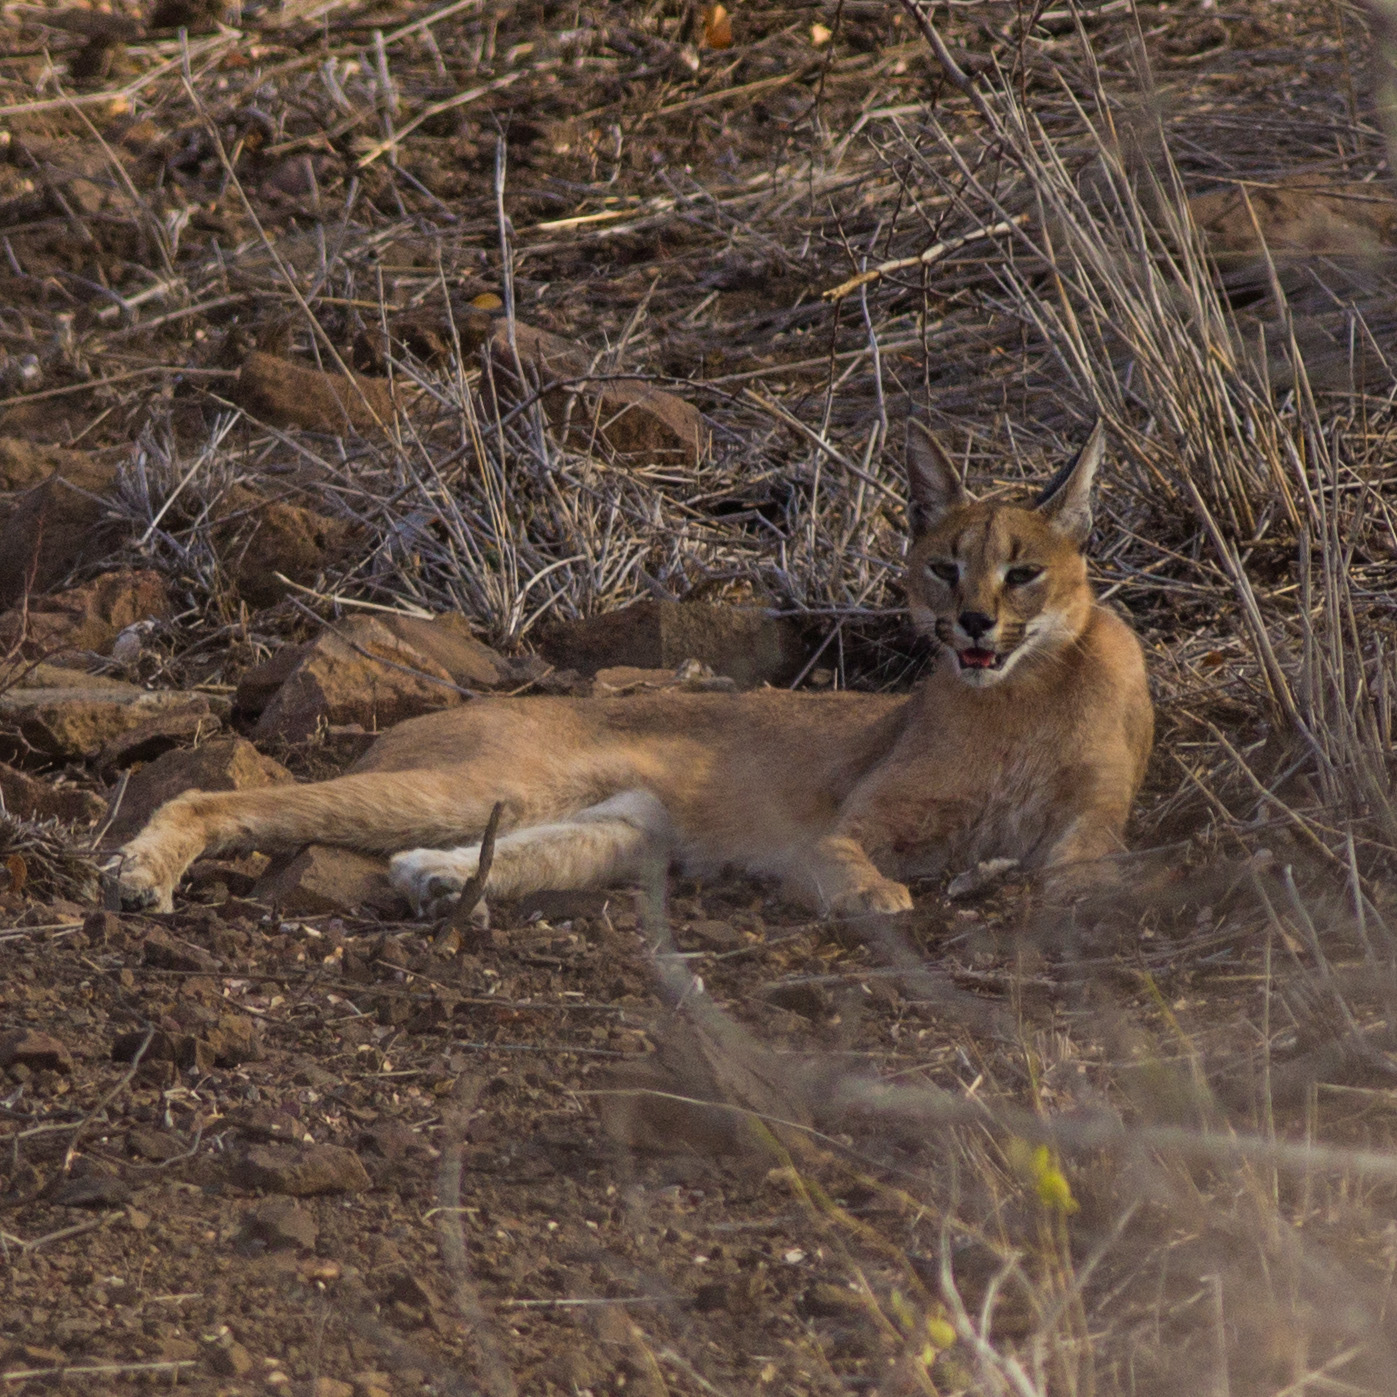 An adult caracal rests after successfully catching a scrub hare.